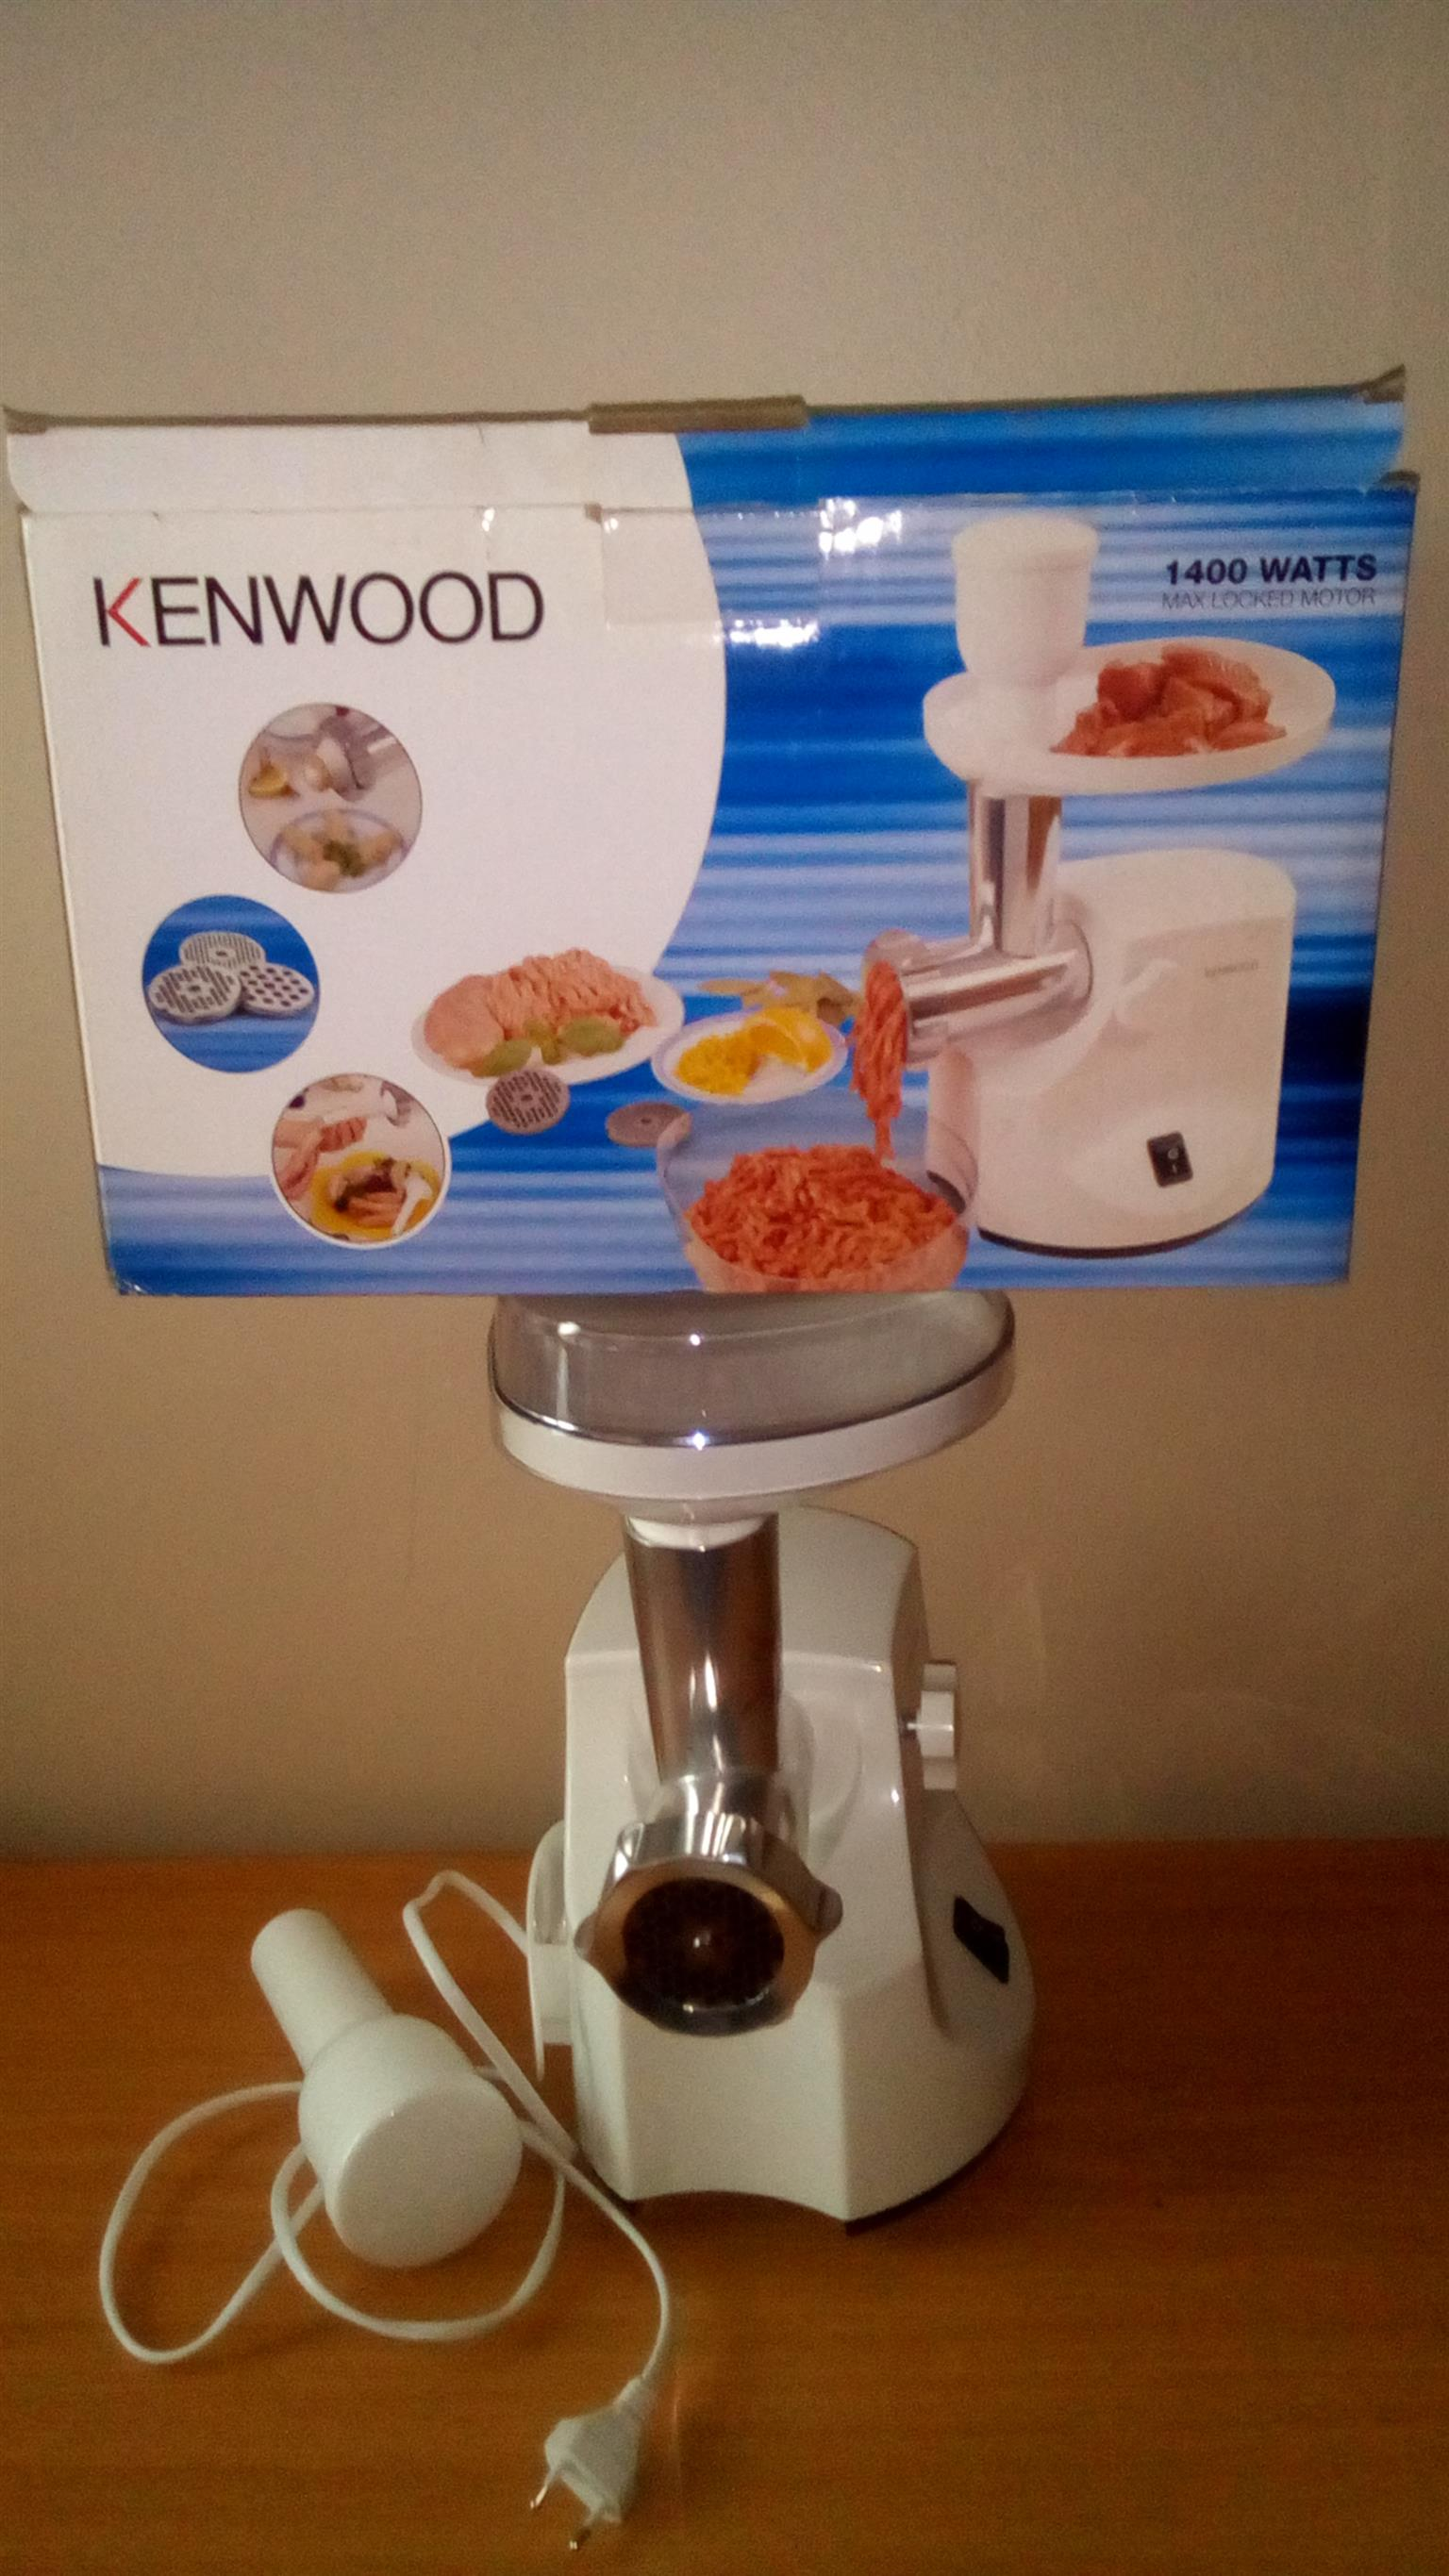 Kenwood MG450 Mincer